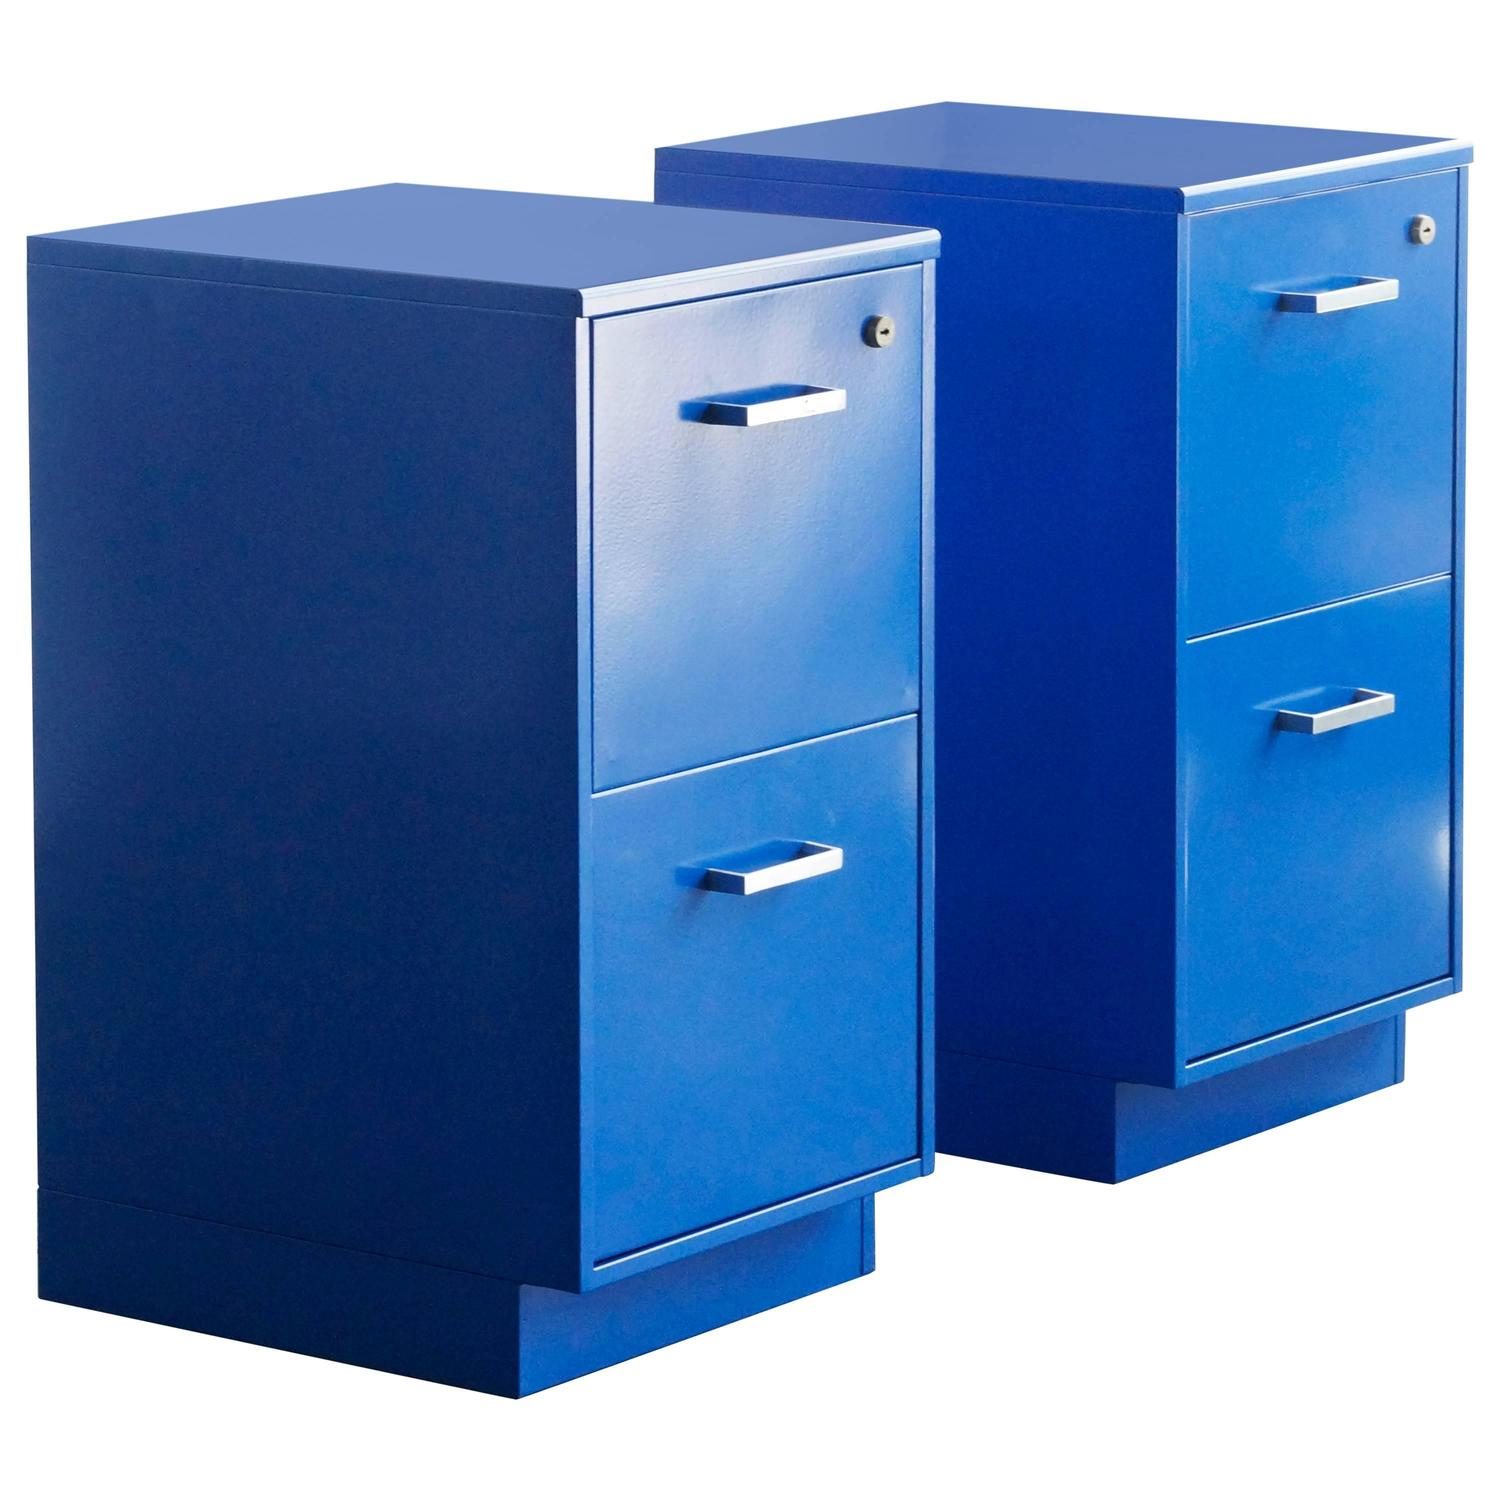 Home Interior Denim Days Figurines Steelcase File Cabinet Steelcase Used 5 Drawer Letter